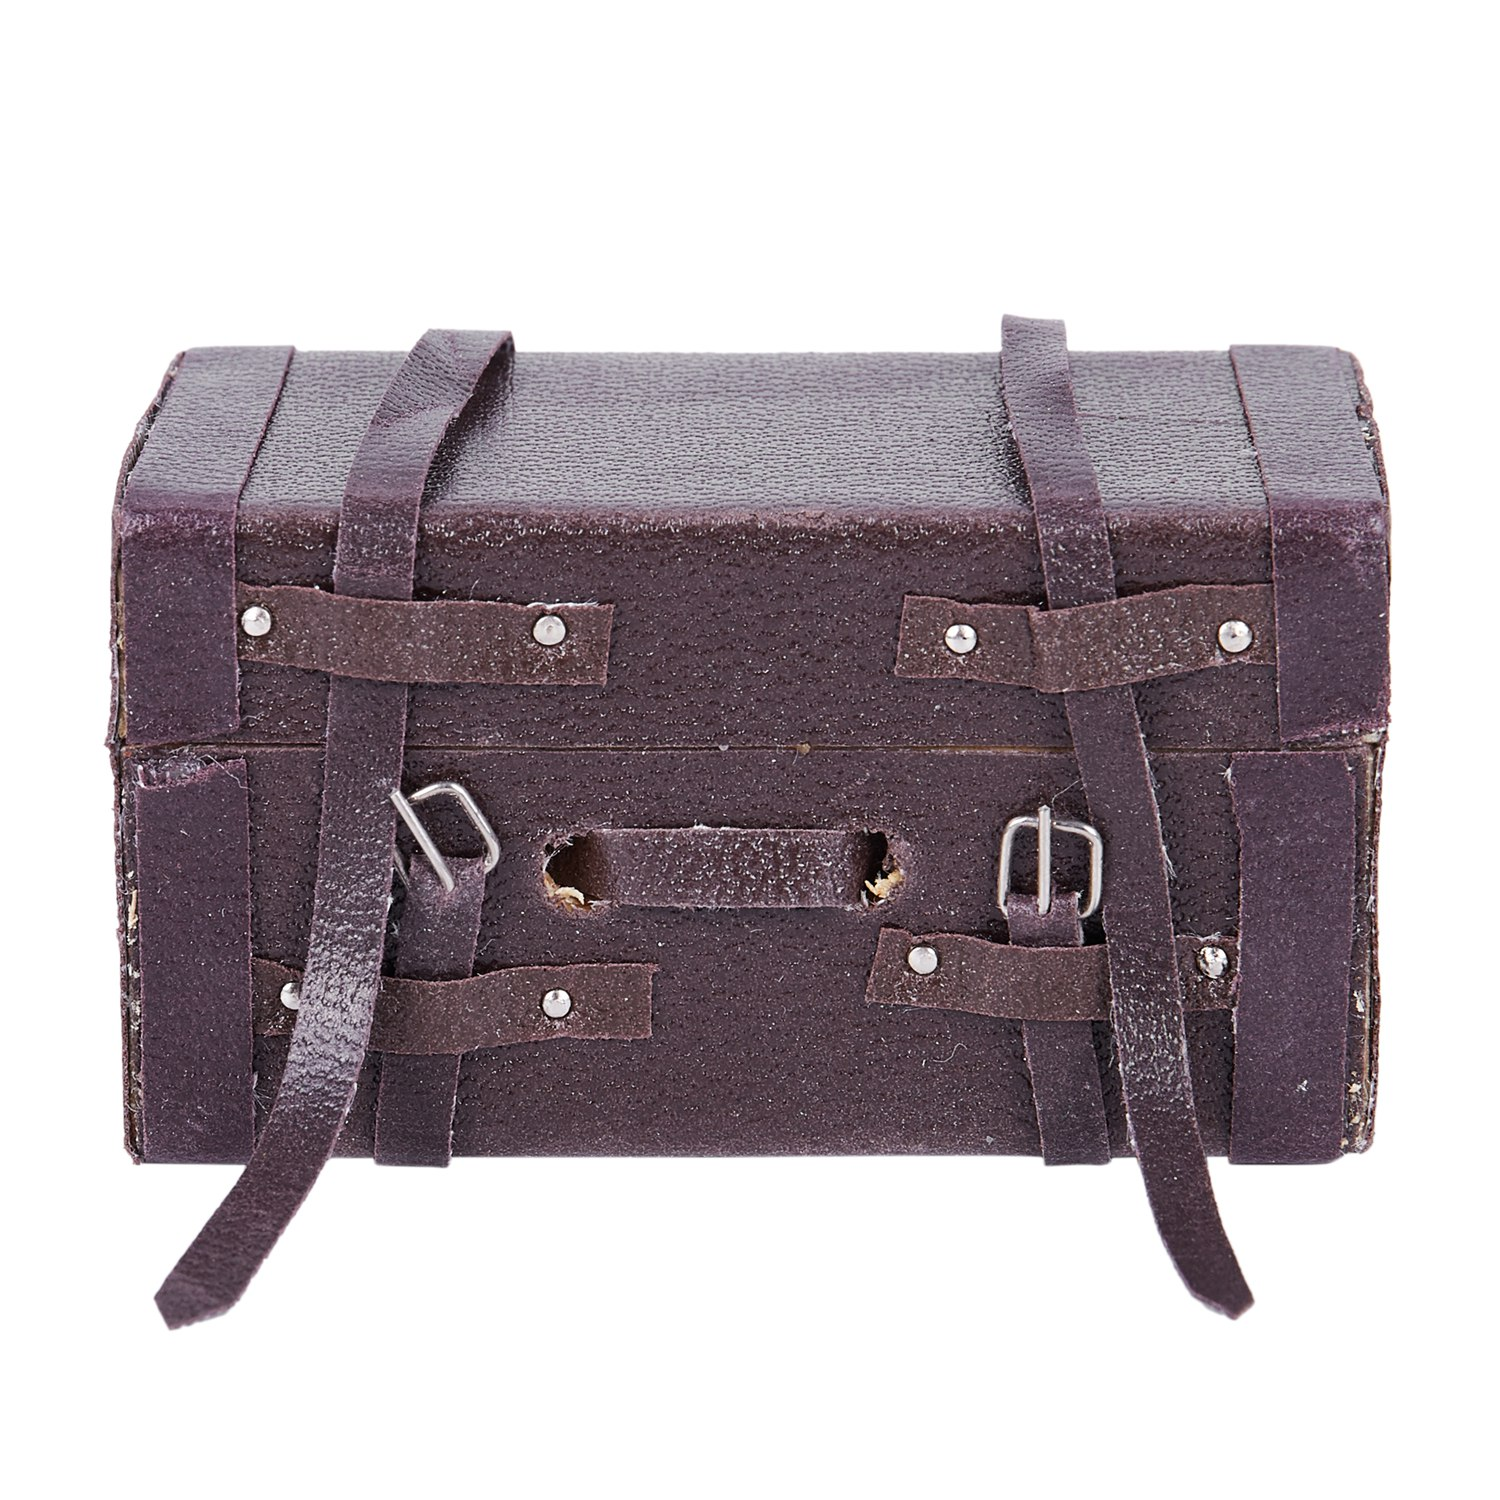 1:12 Doll House Miniature Vintage Leather Wood Suitcase Mini Luggage Box